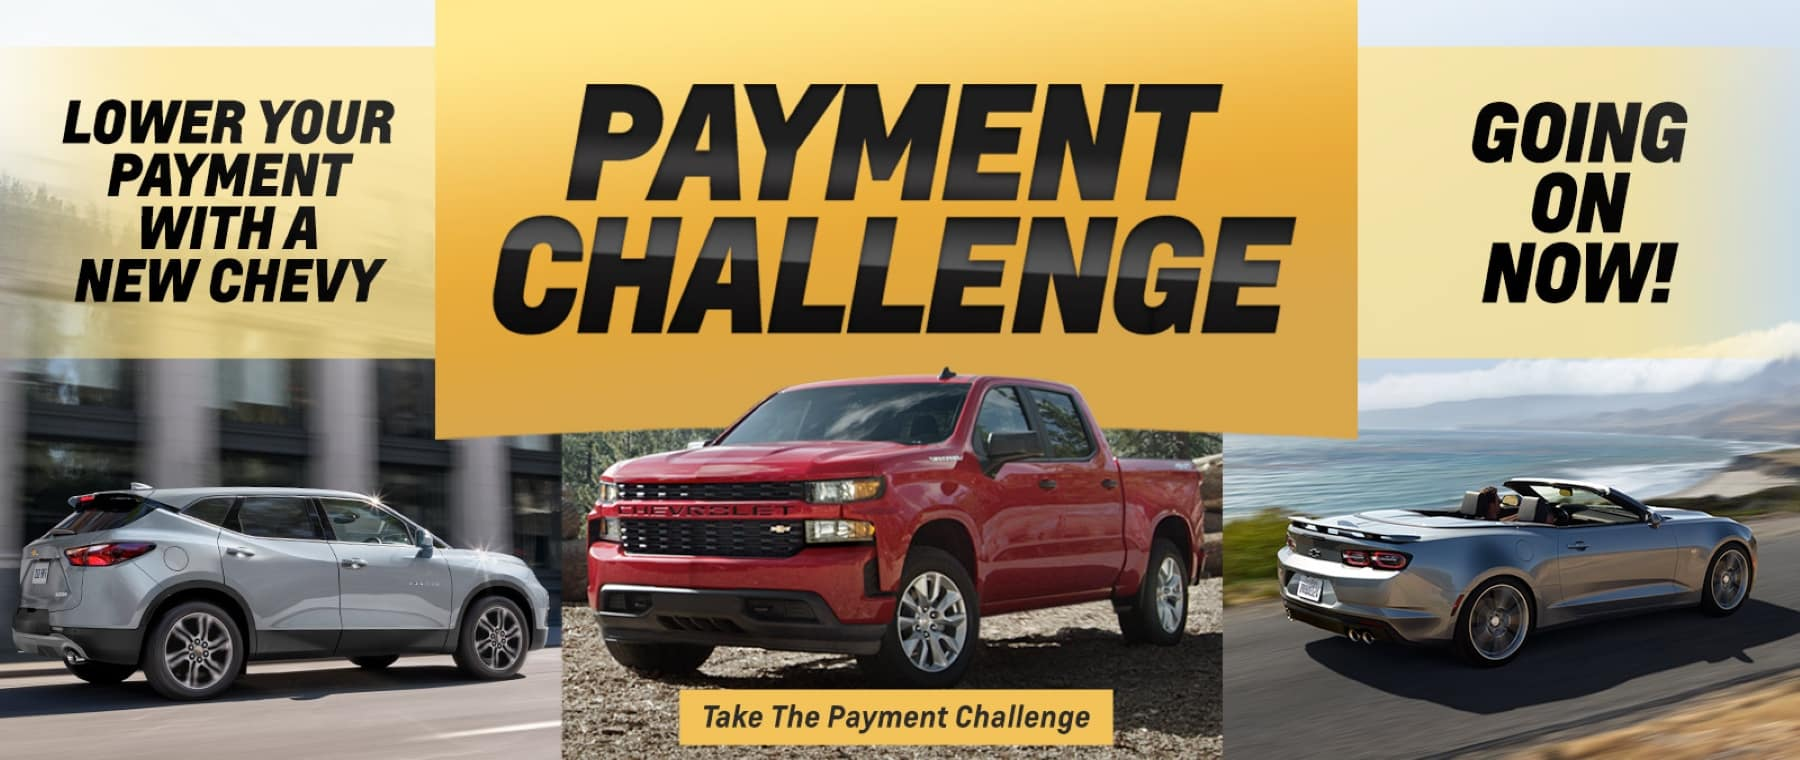 Take the Payment Challenge at Ferman Chevy Tampa